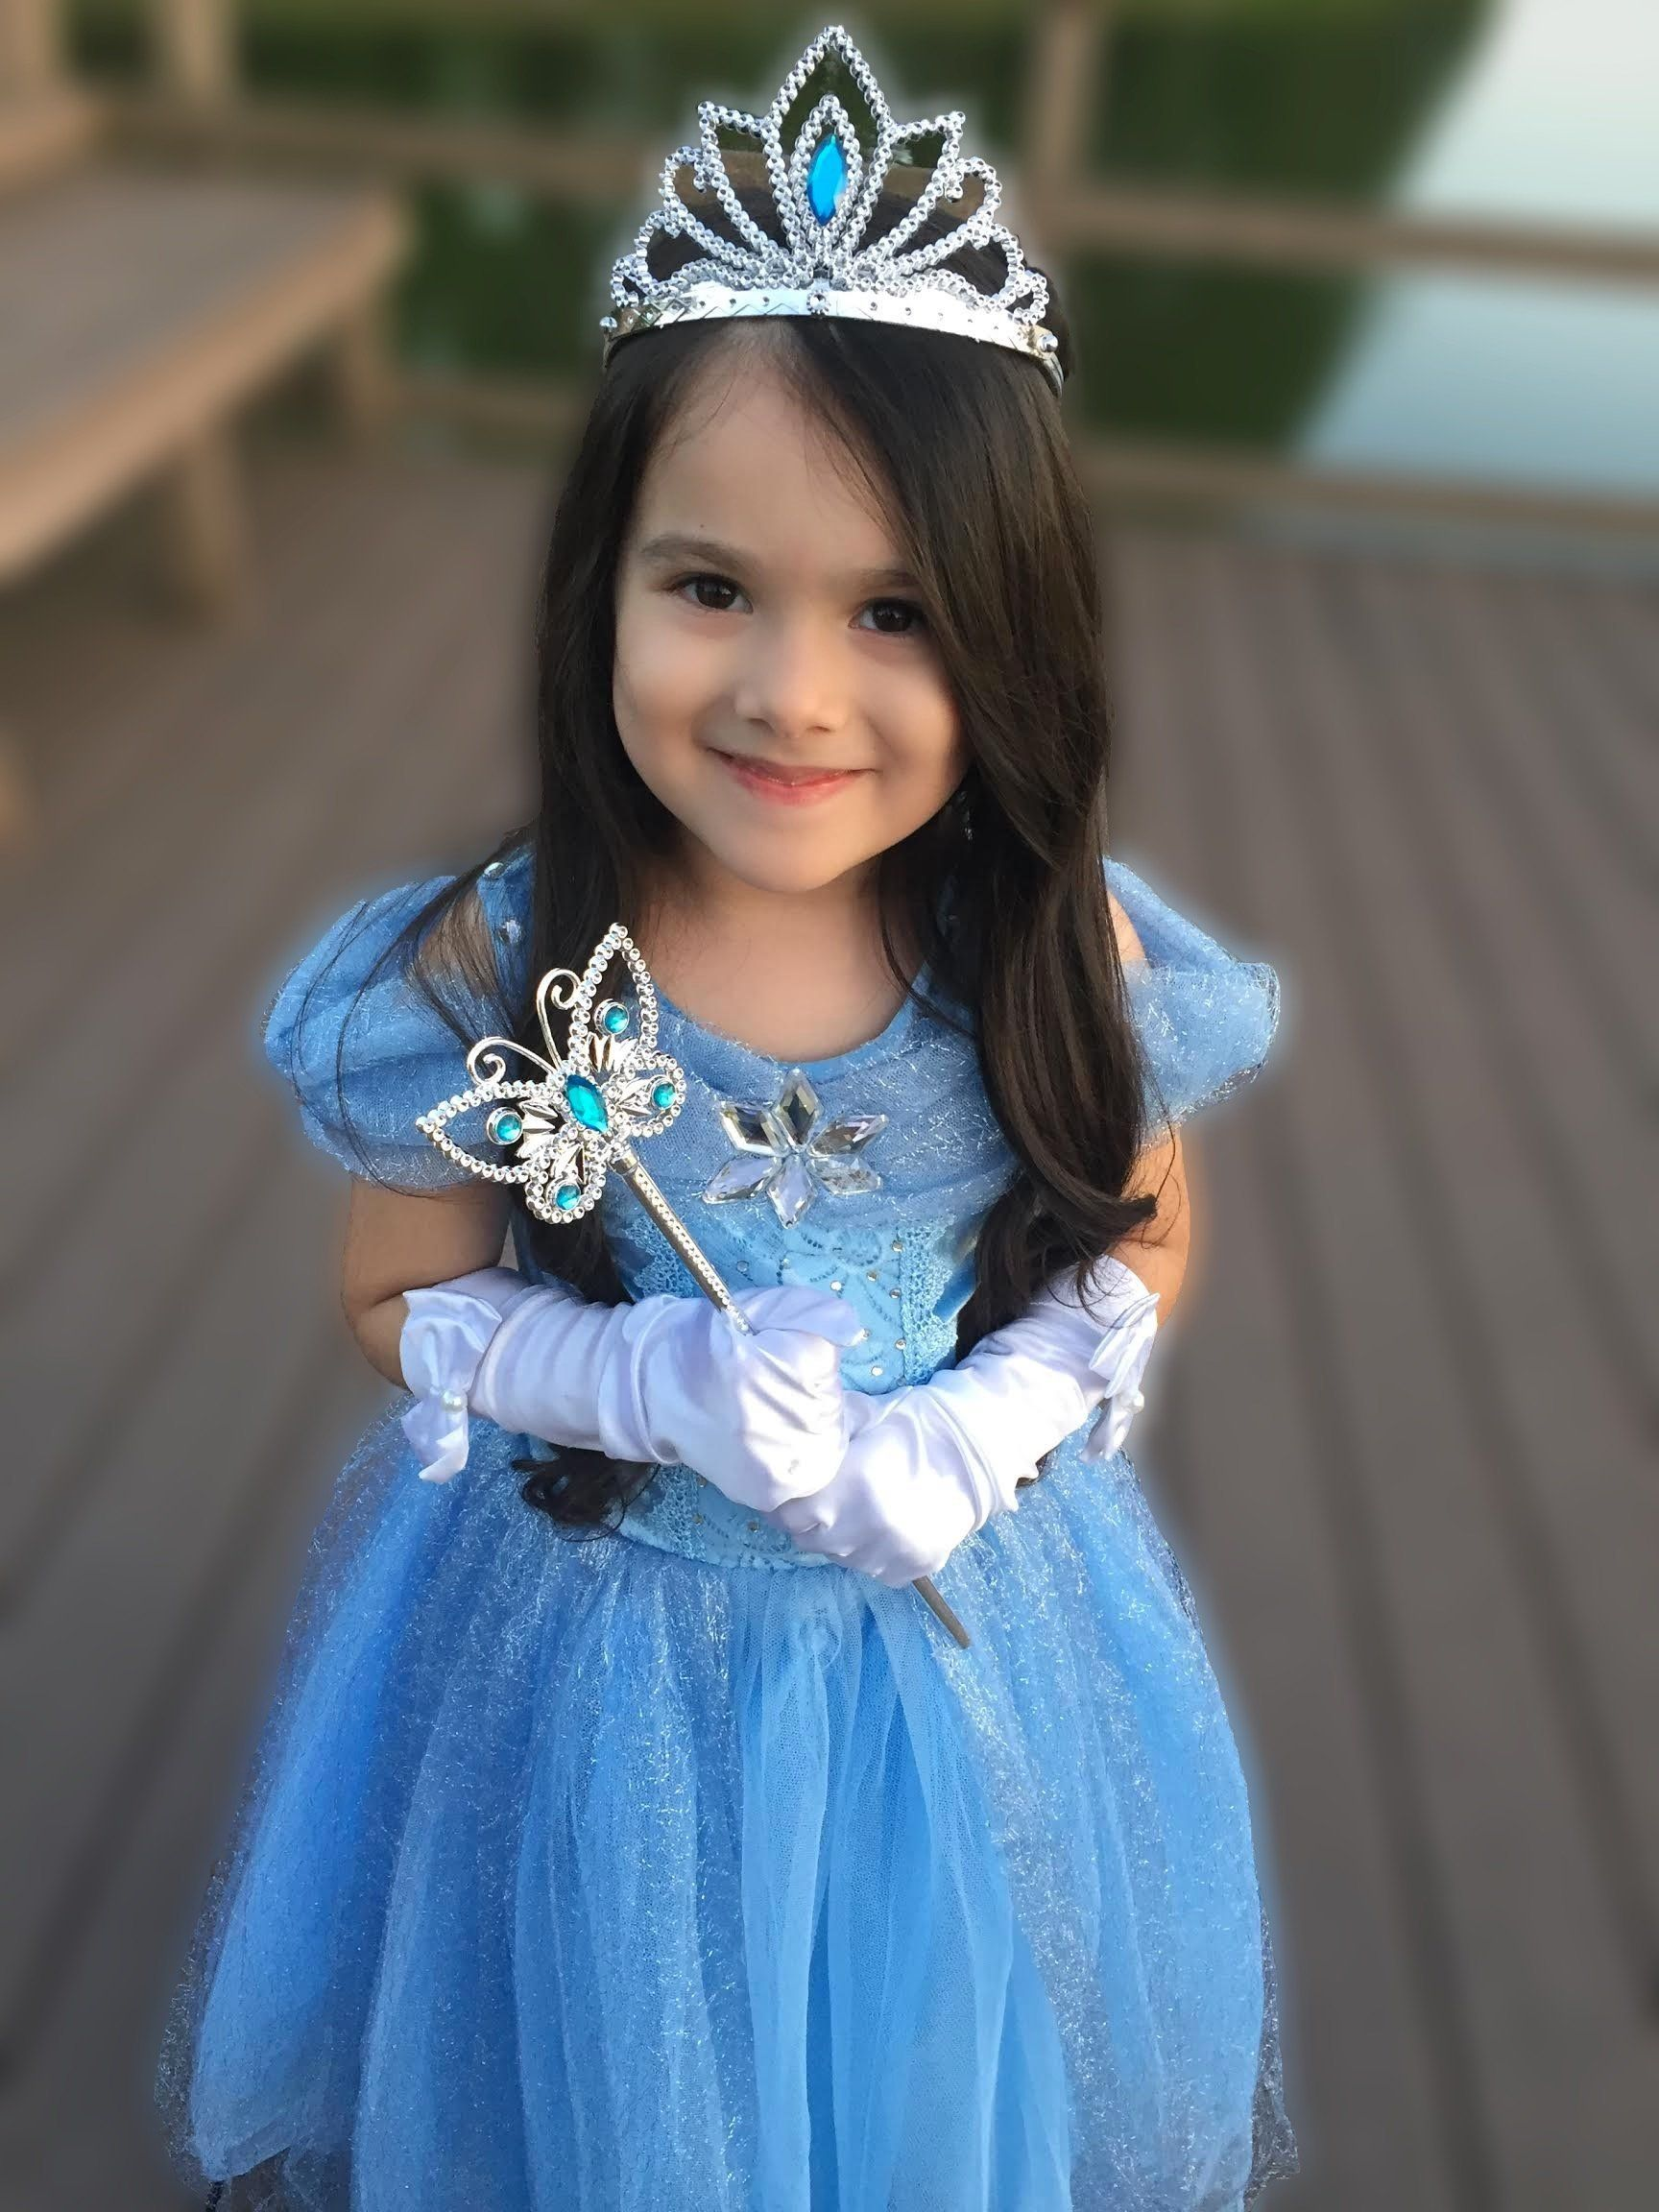 Cinderella crystal princess party costume dress with